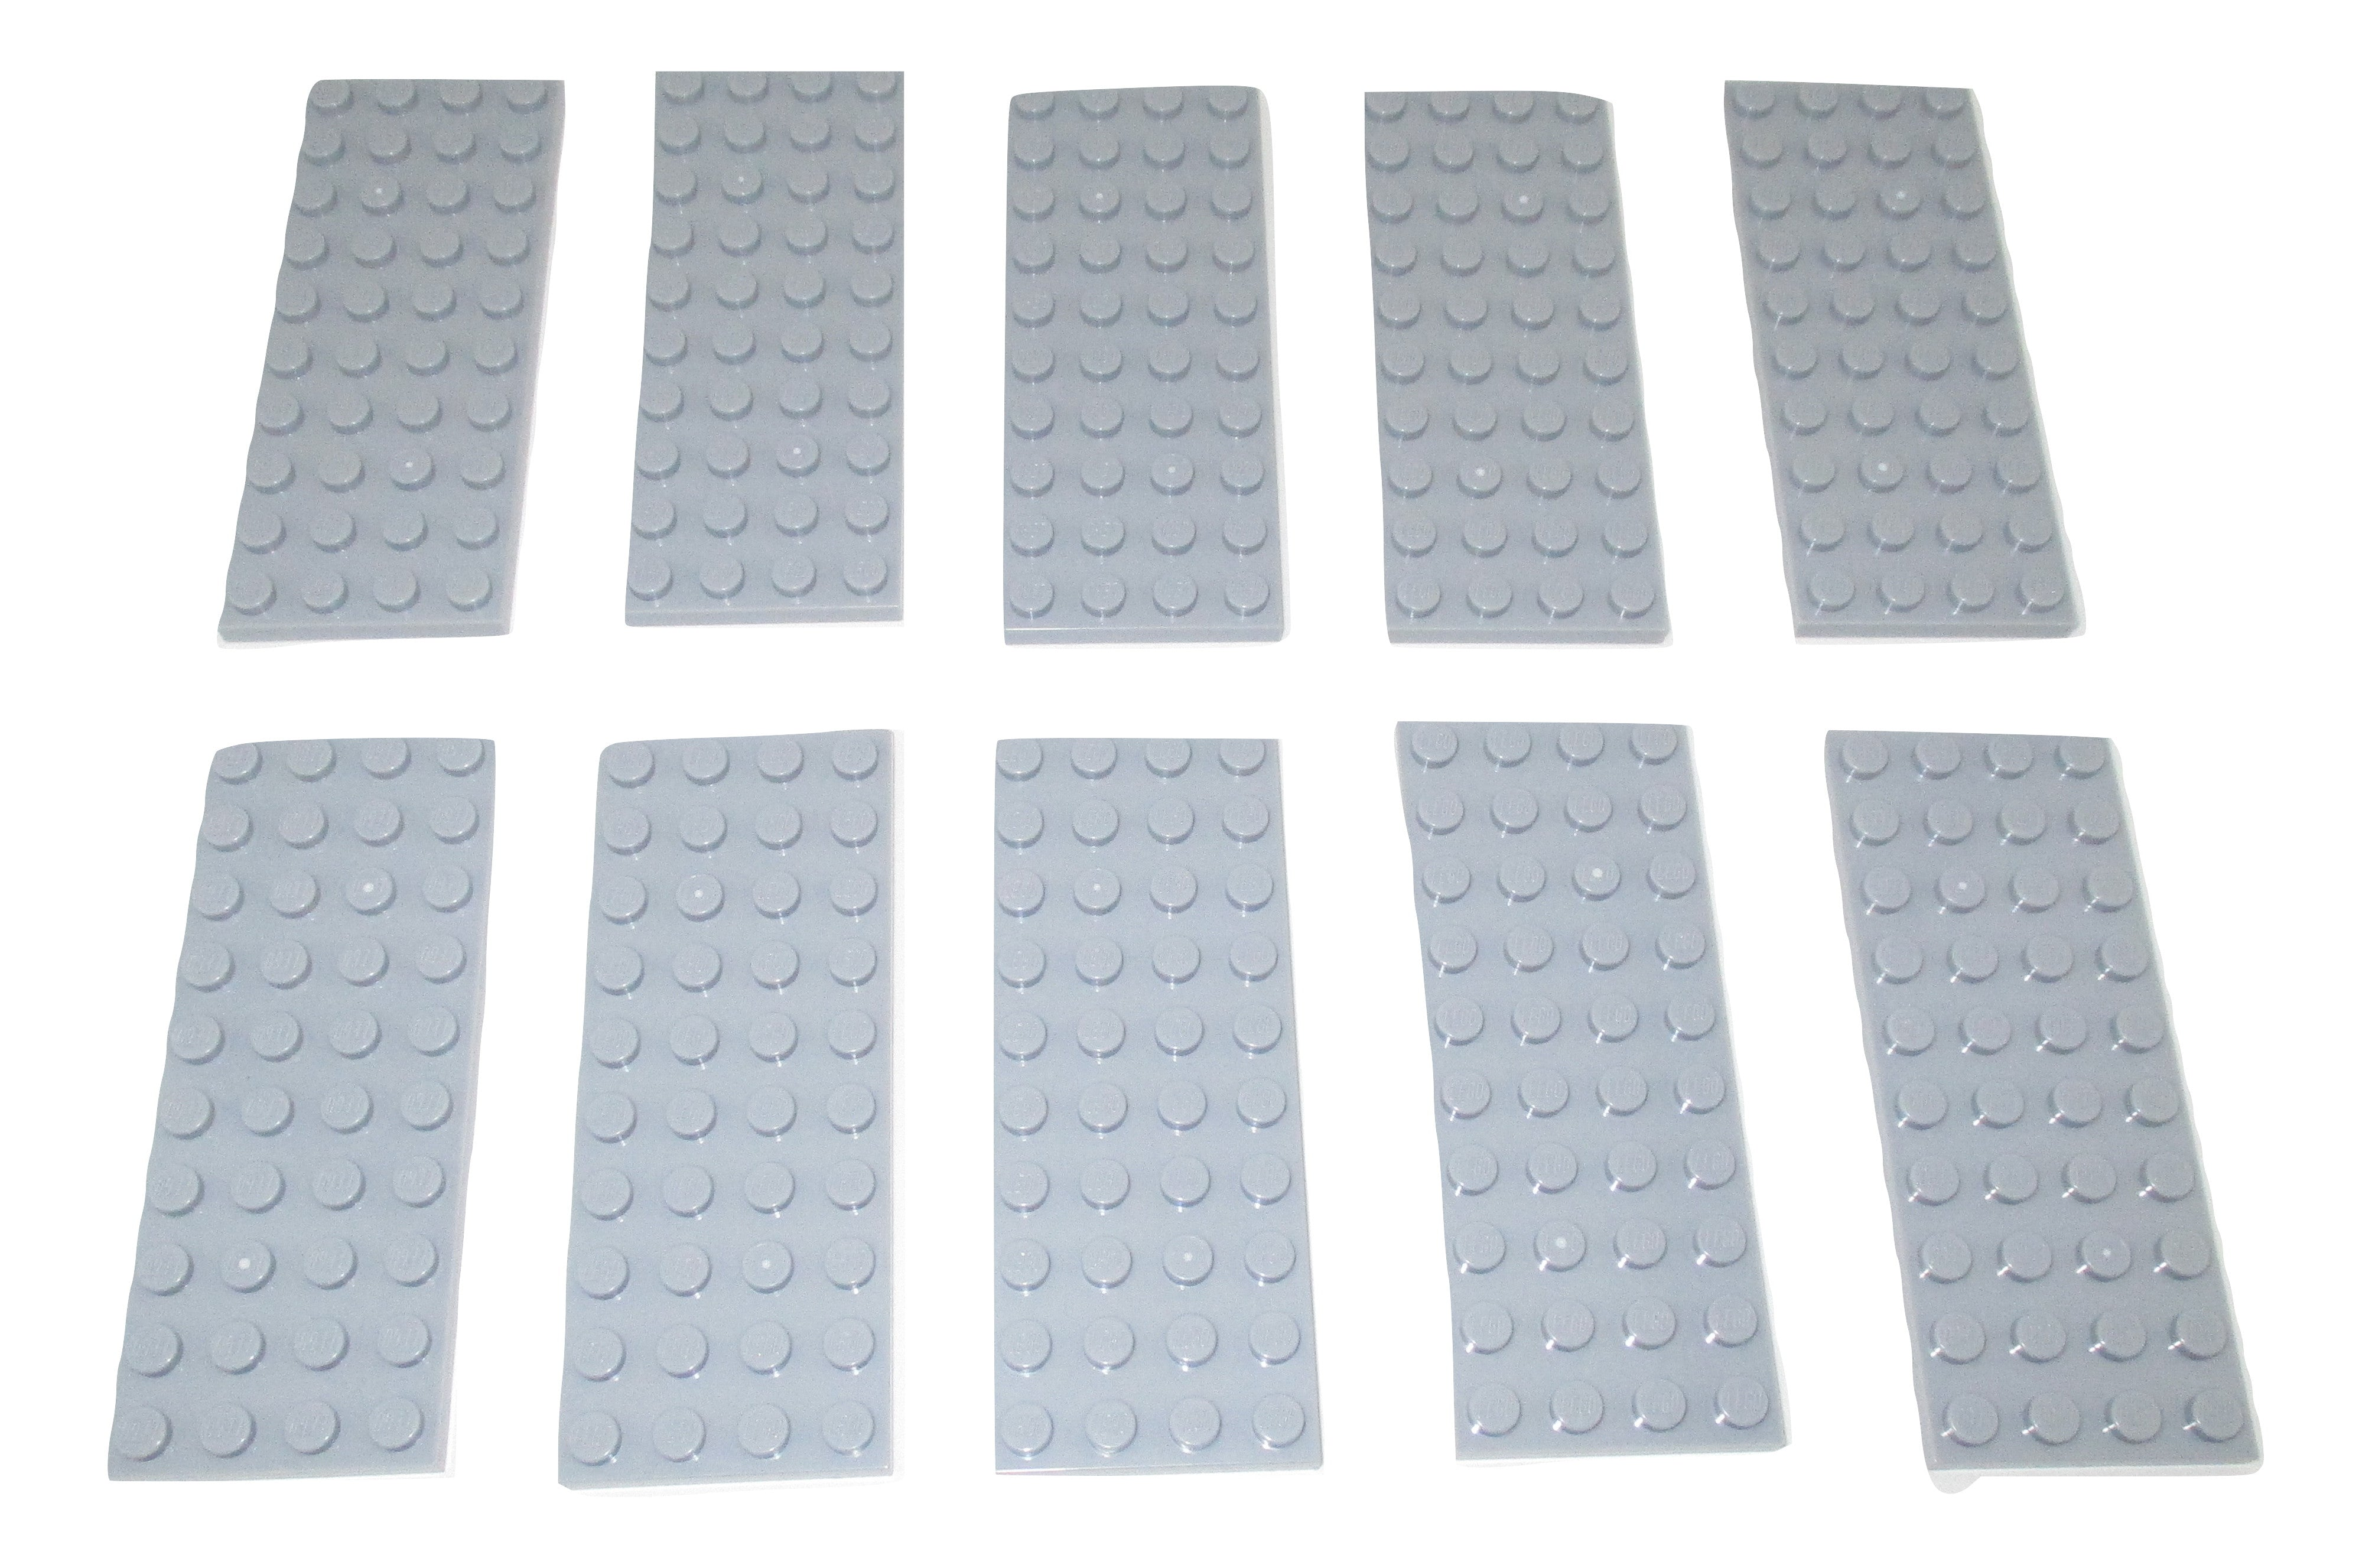 Choose Quantity Plate Plaque 4x10 10x4 3030 Dark gray//gris//grau Lego